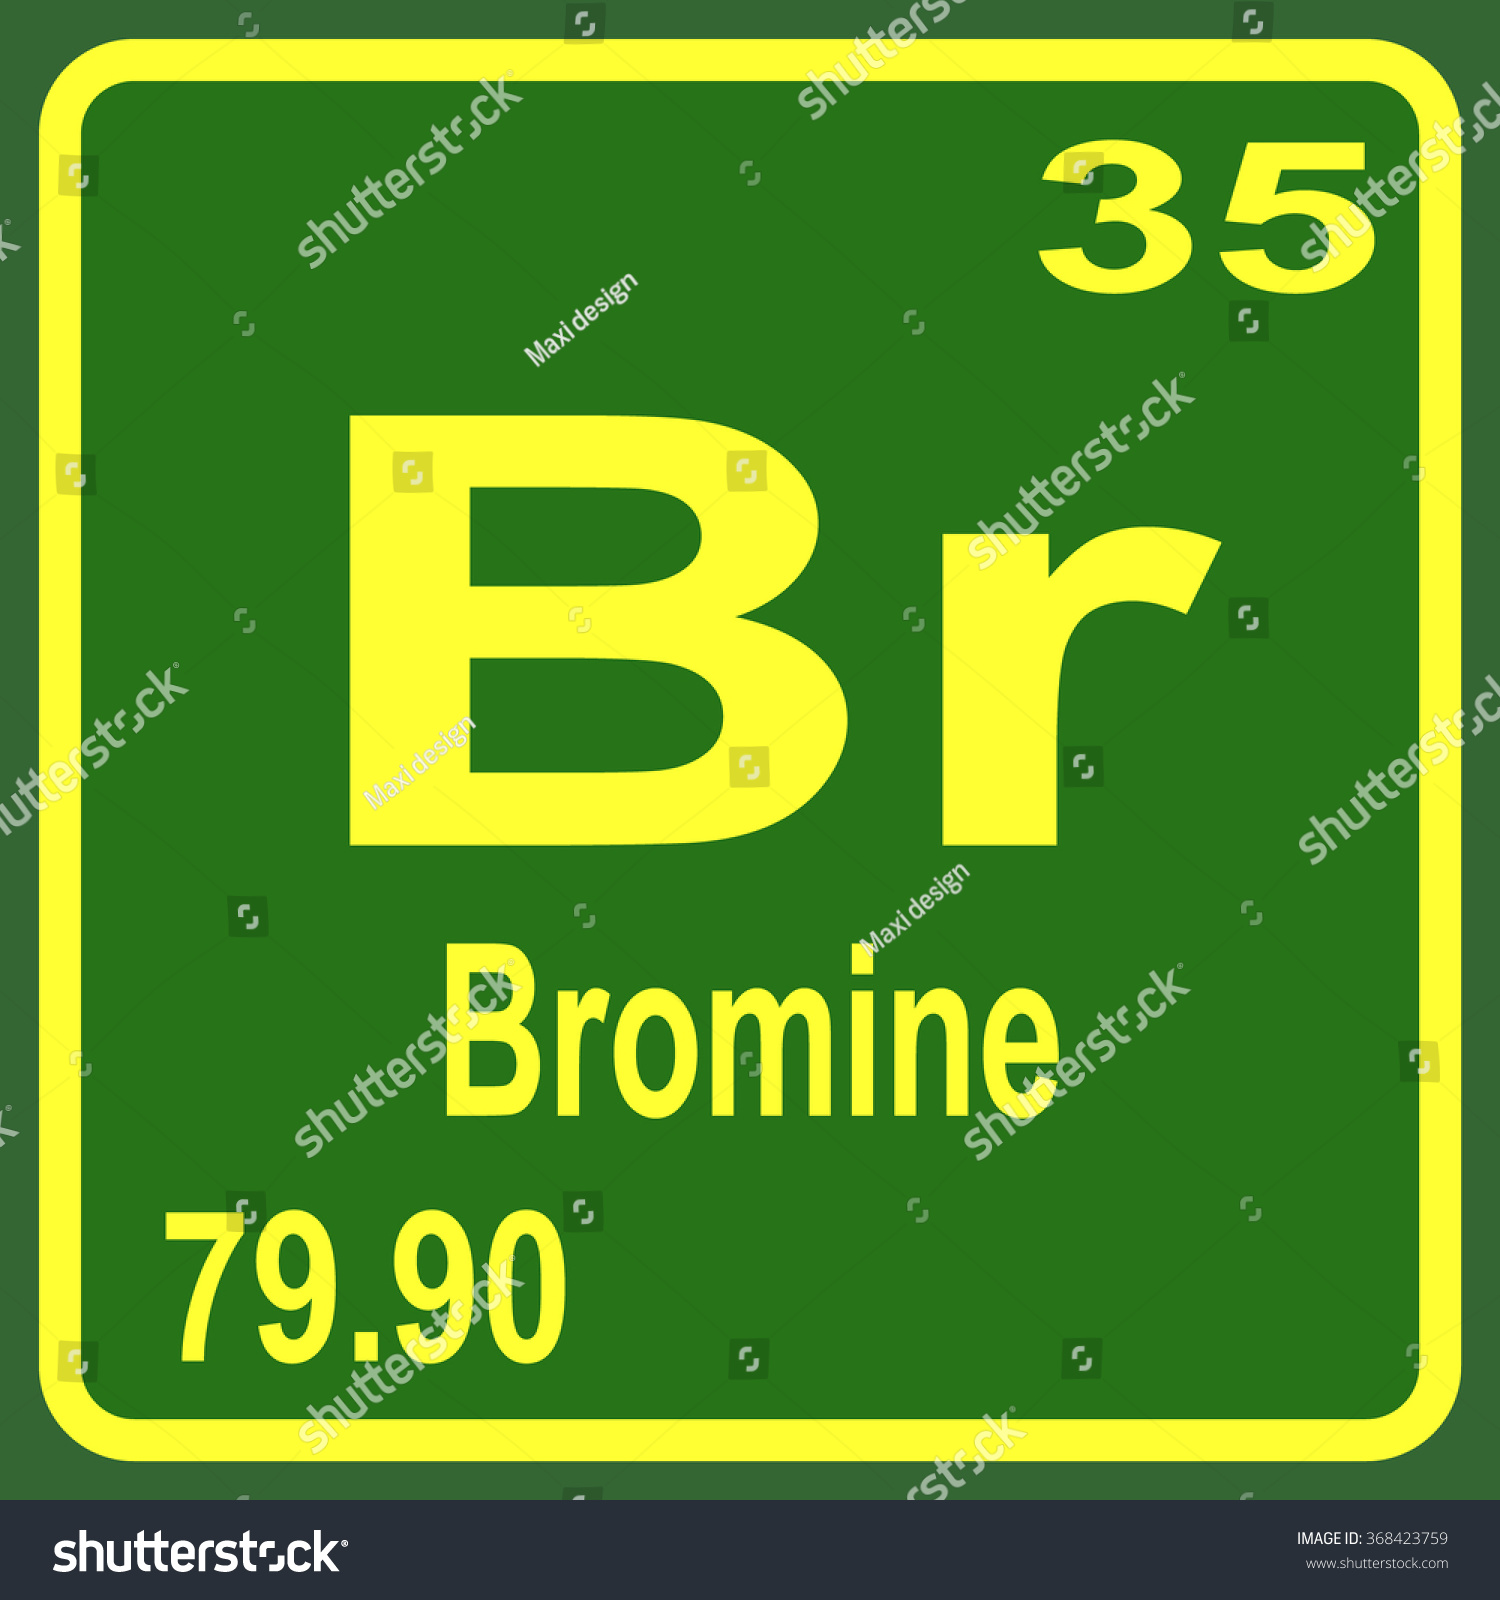 Periodic table elements bromine stock vector 368423759 shutterstock periodic table of elements bromine gamestrikefo Image collections